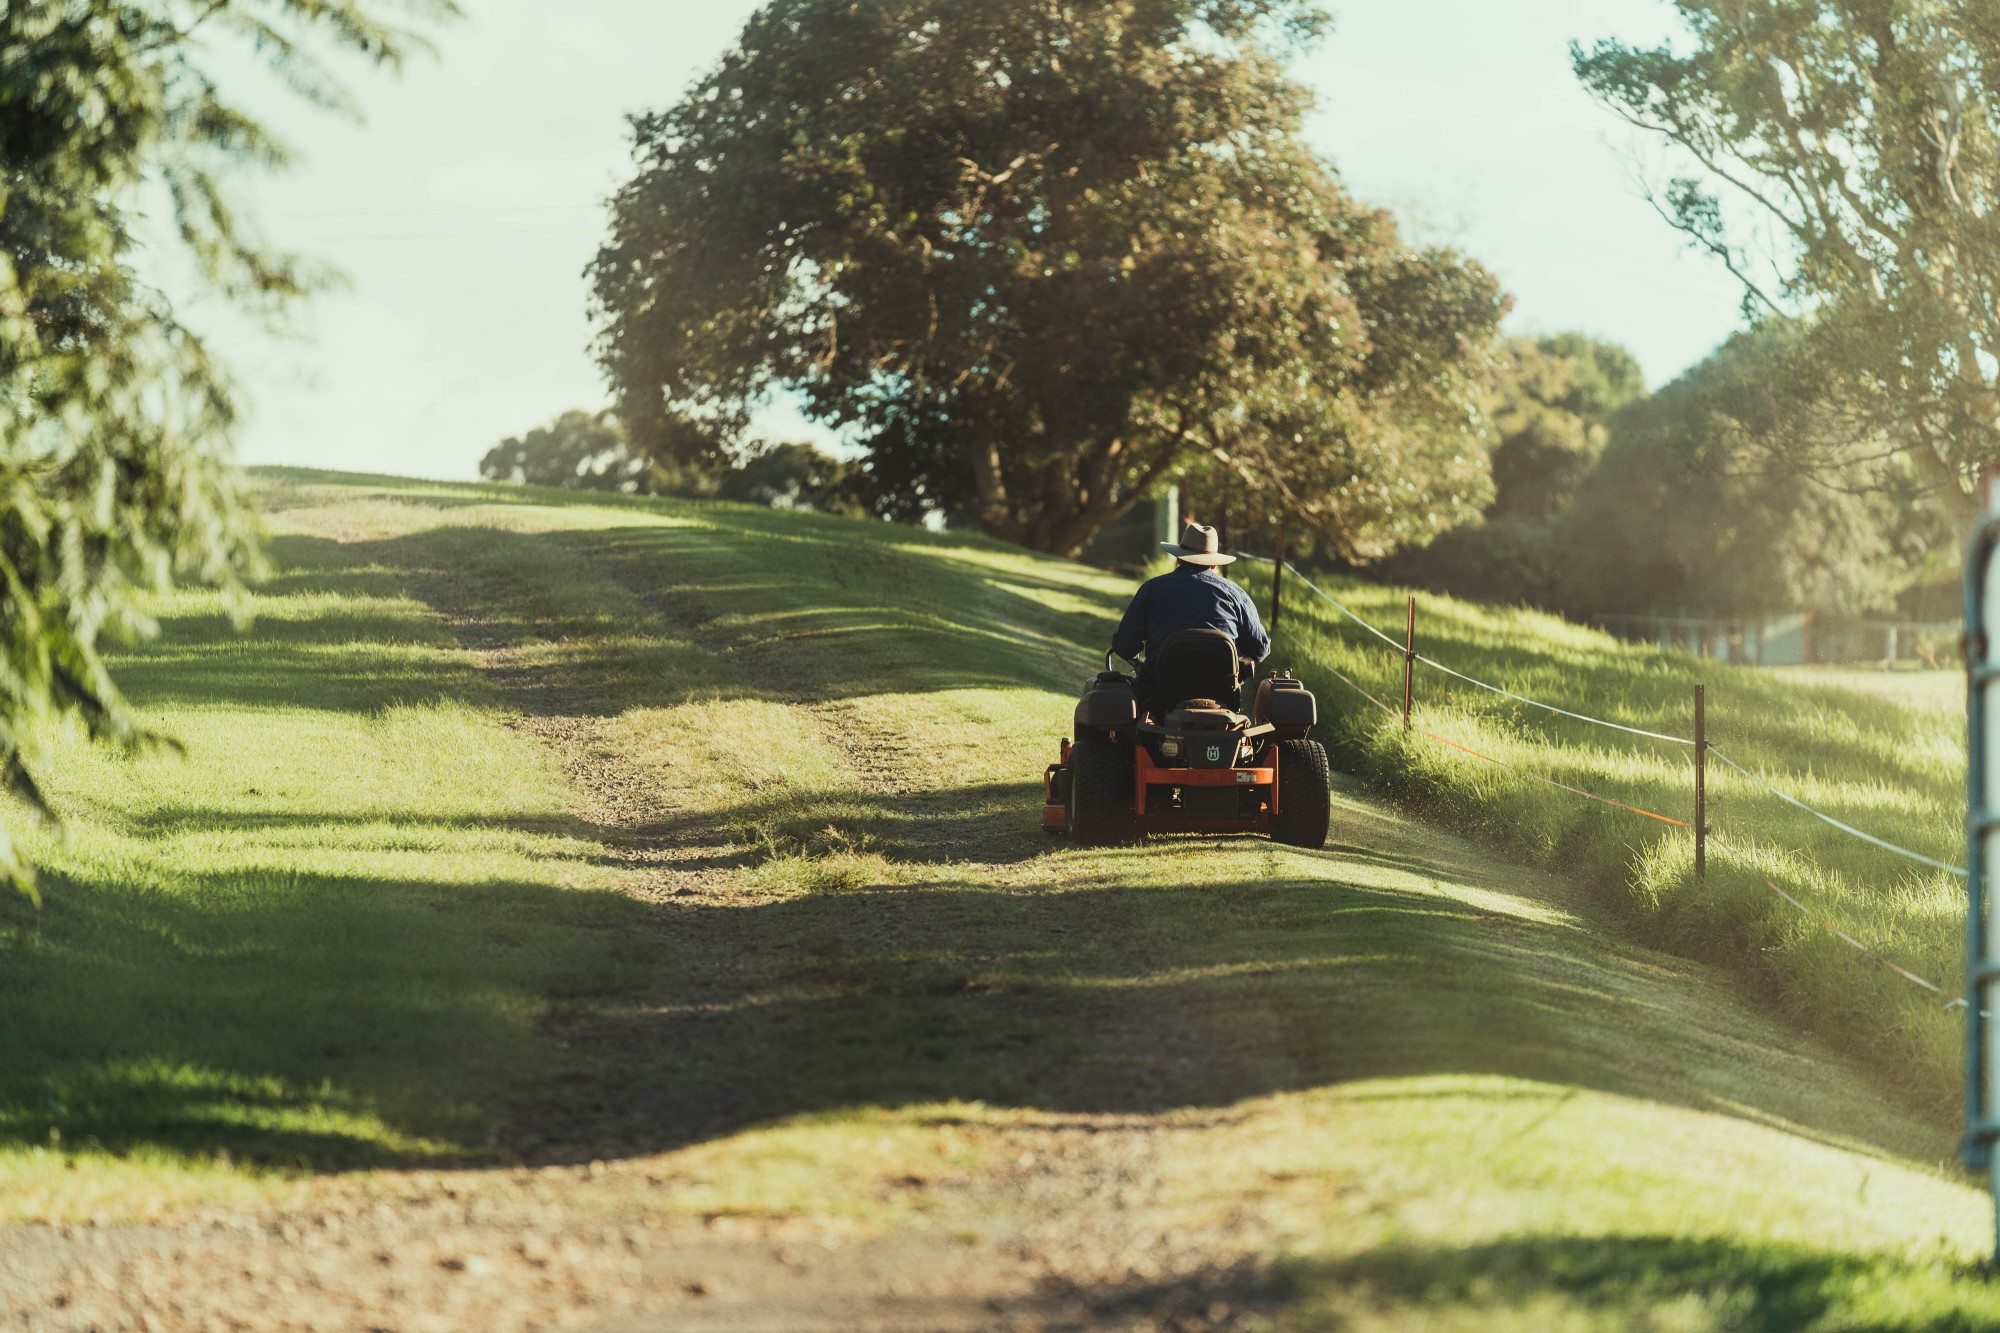 A man on a riding lawn mower, cutting grass between a fence and a driveway.